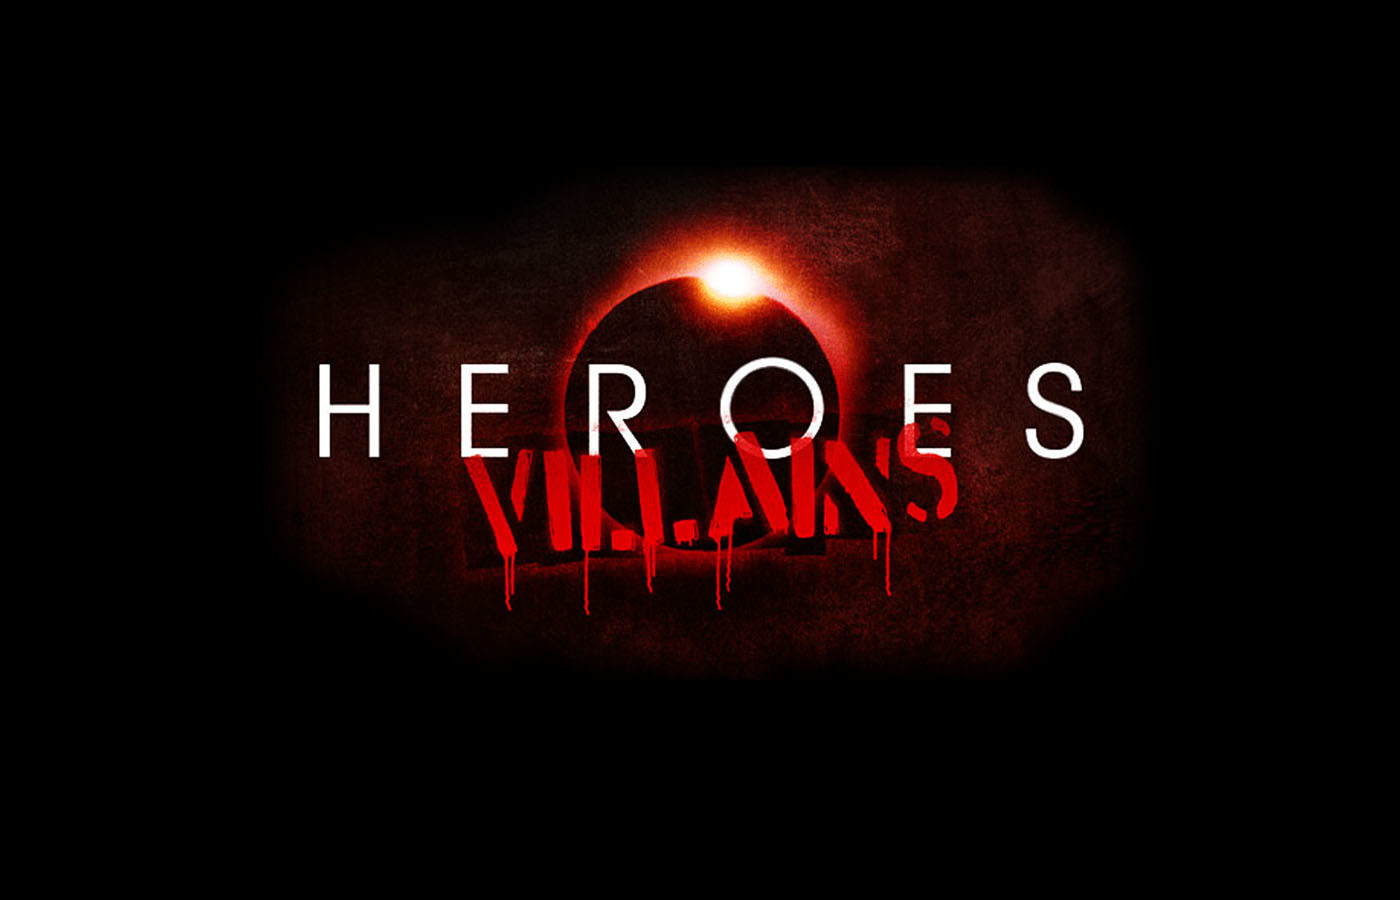 heroes TV series villains HD Wallpaper